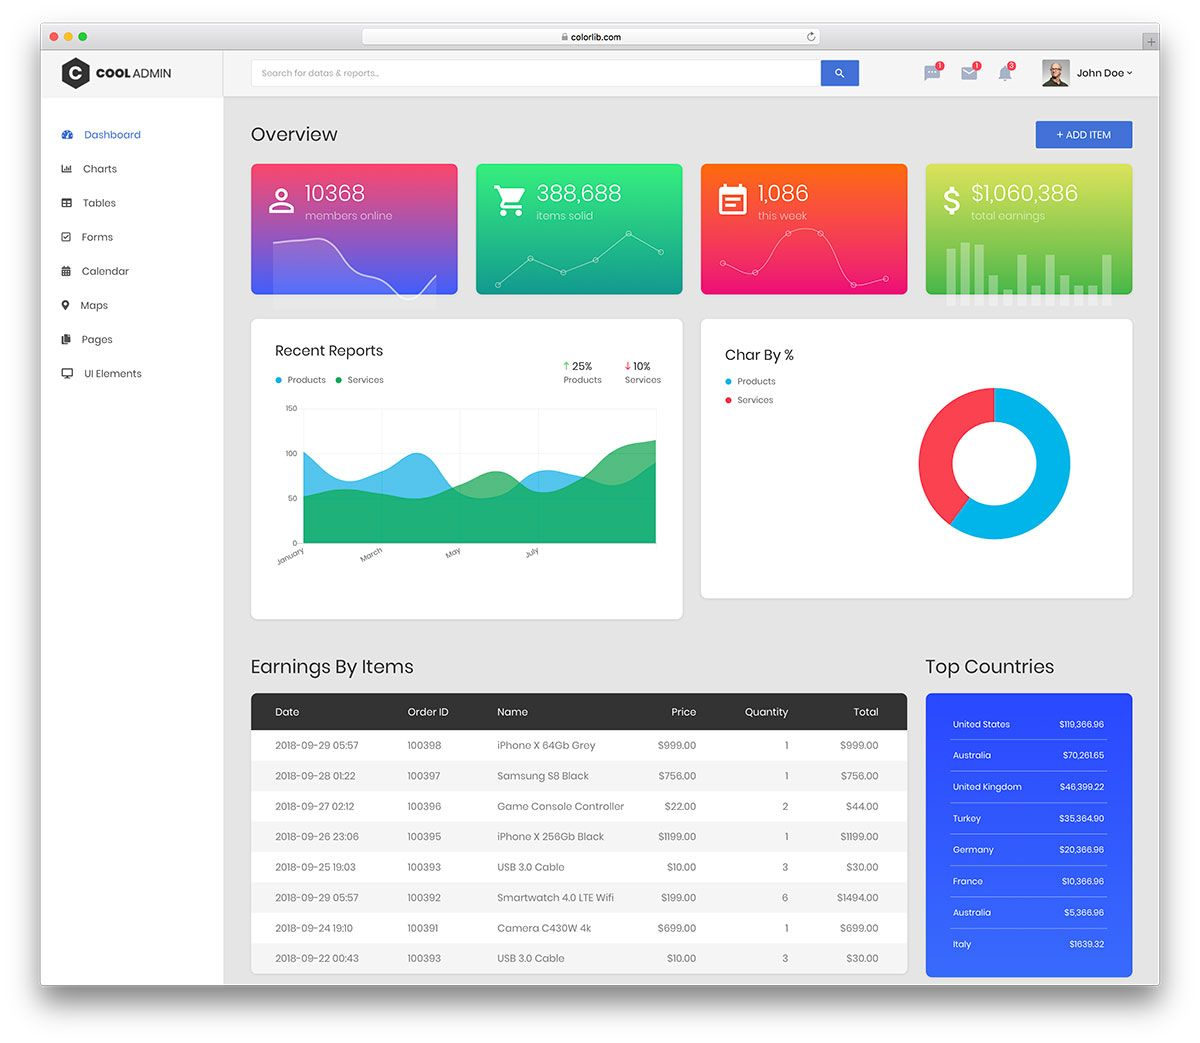 35 Best Free Dashboard Templates For Admins 2020 Colorlib In 2020 Dashboard Template Free Dashboard Templates Excel Dashboard Templates